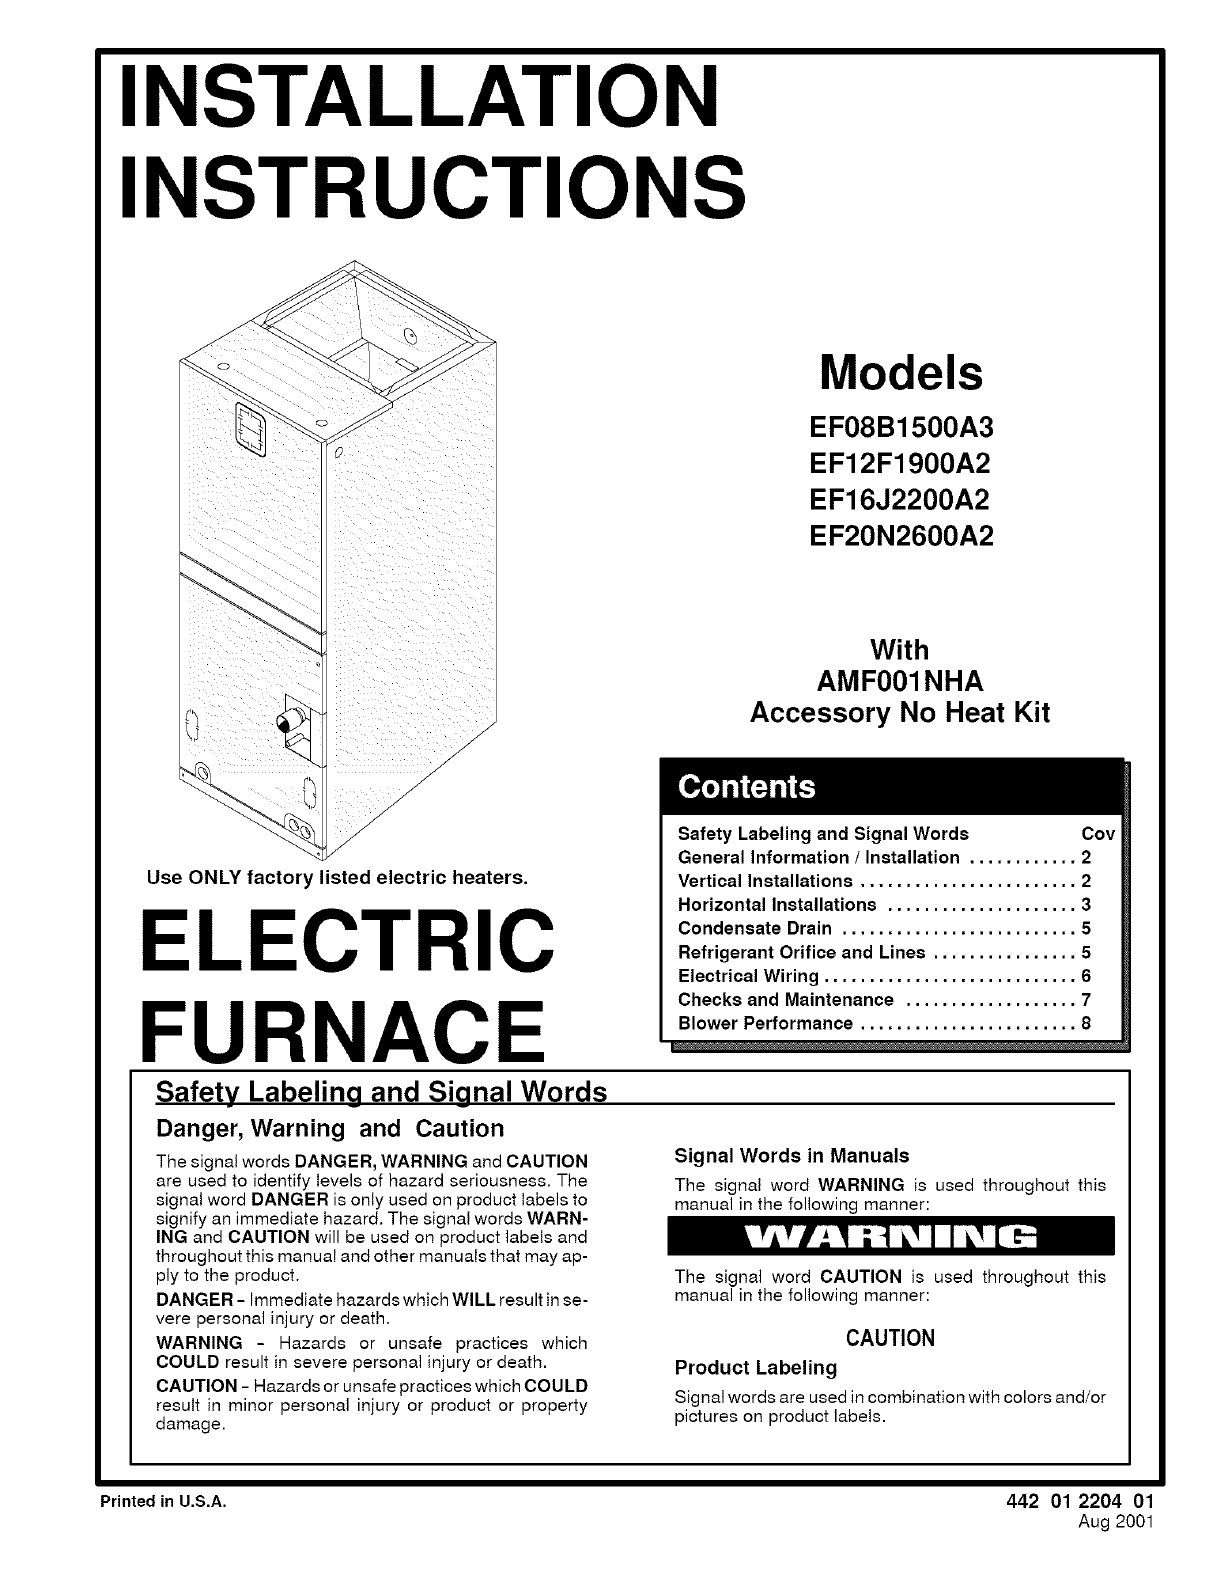 Goodman Furnace Installation Instructions Manual Guide